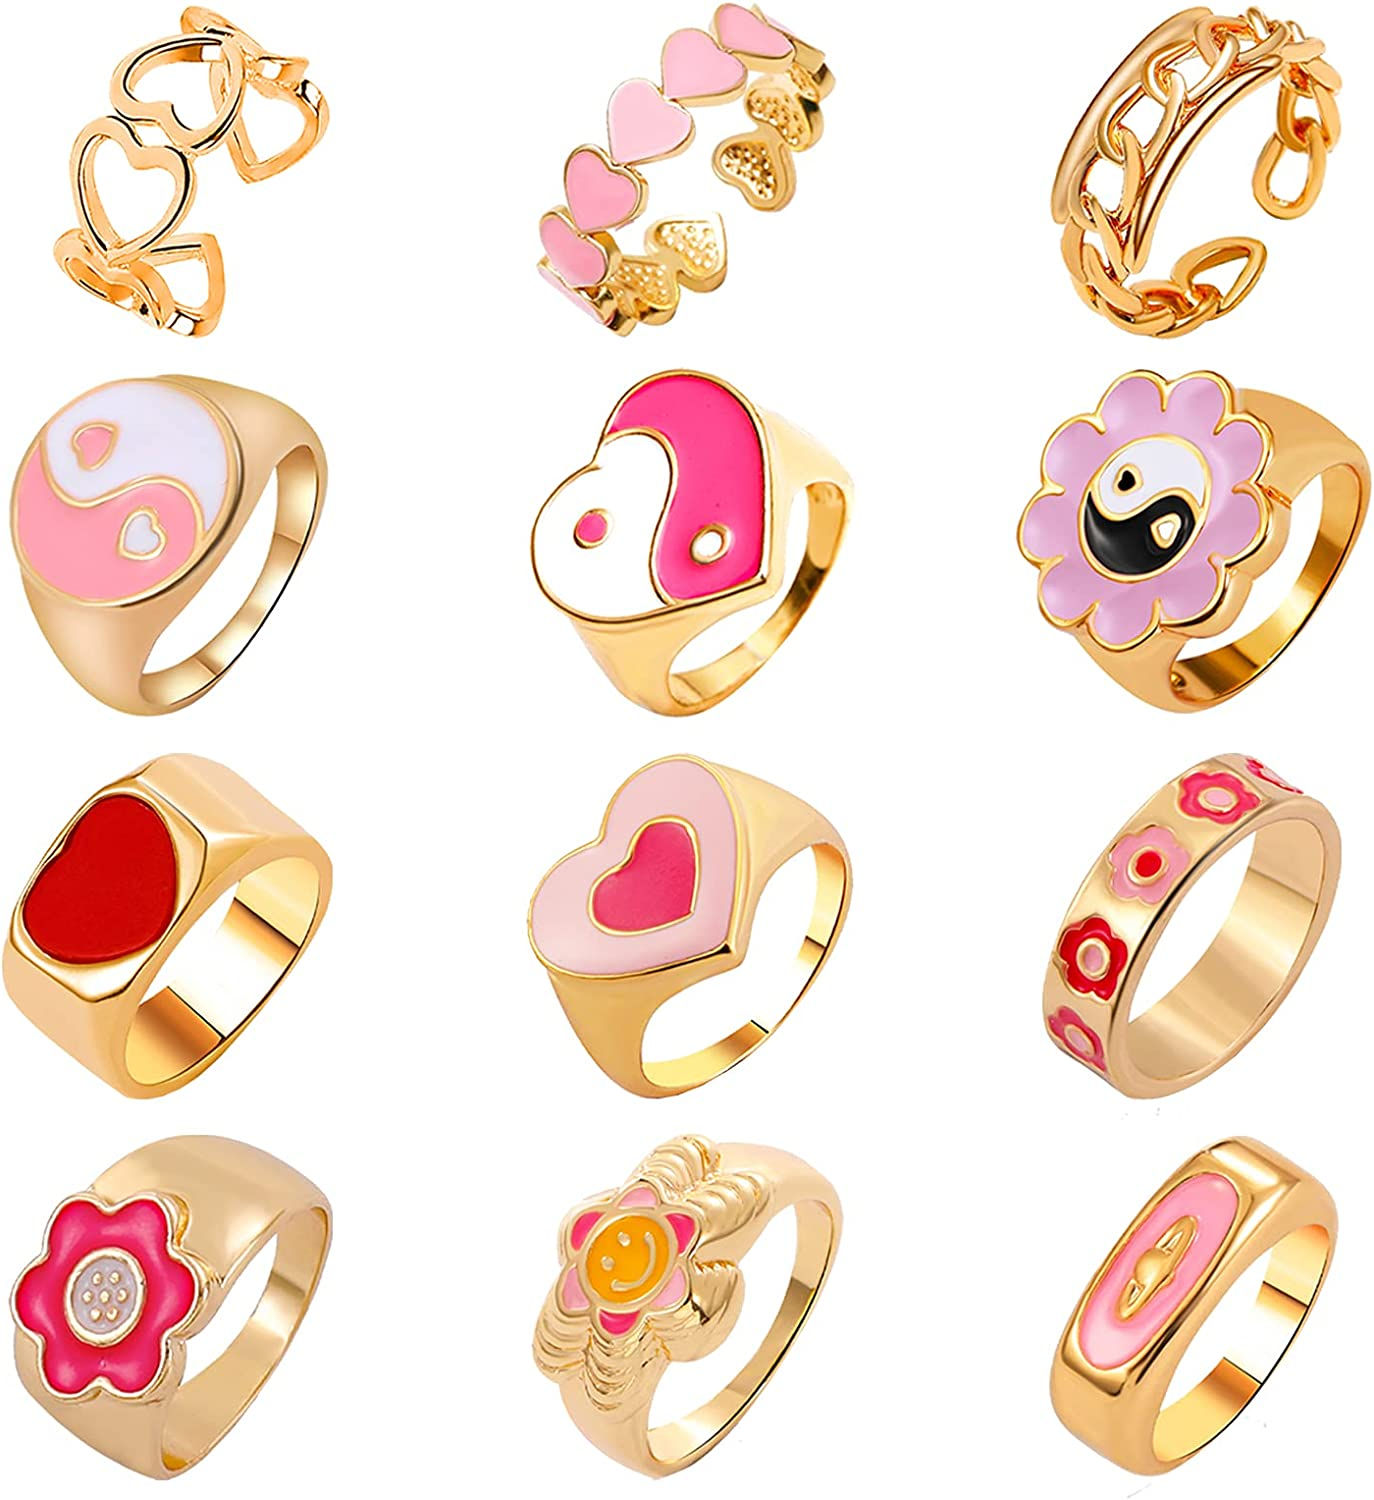 NEWITIN 12 1 online shop year warranty Pieces Y2K Colorful Si Chunky Trendy Gold Rings